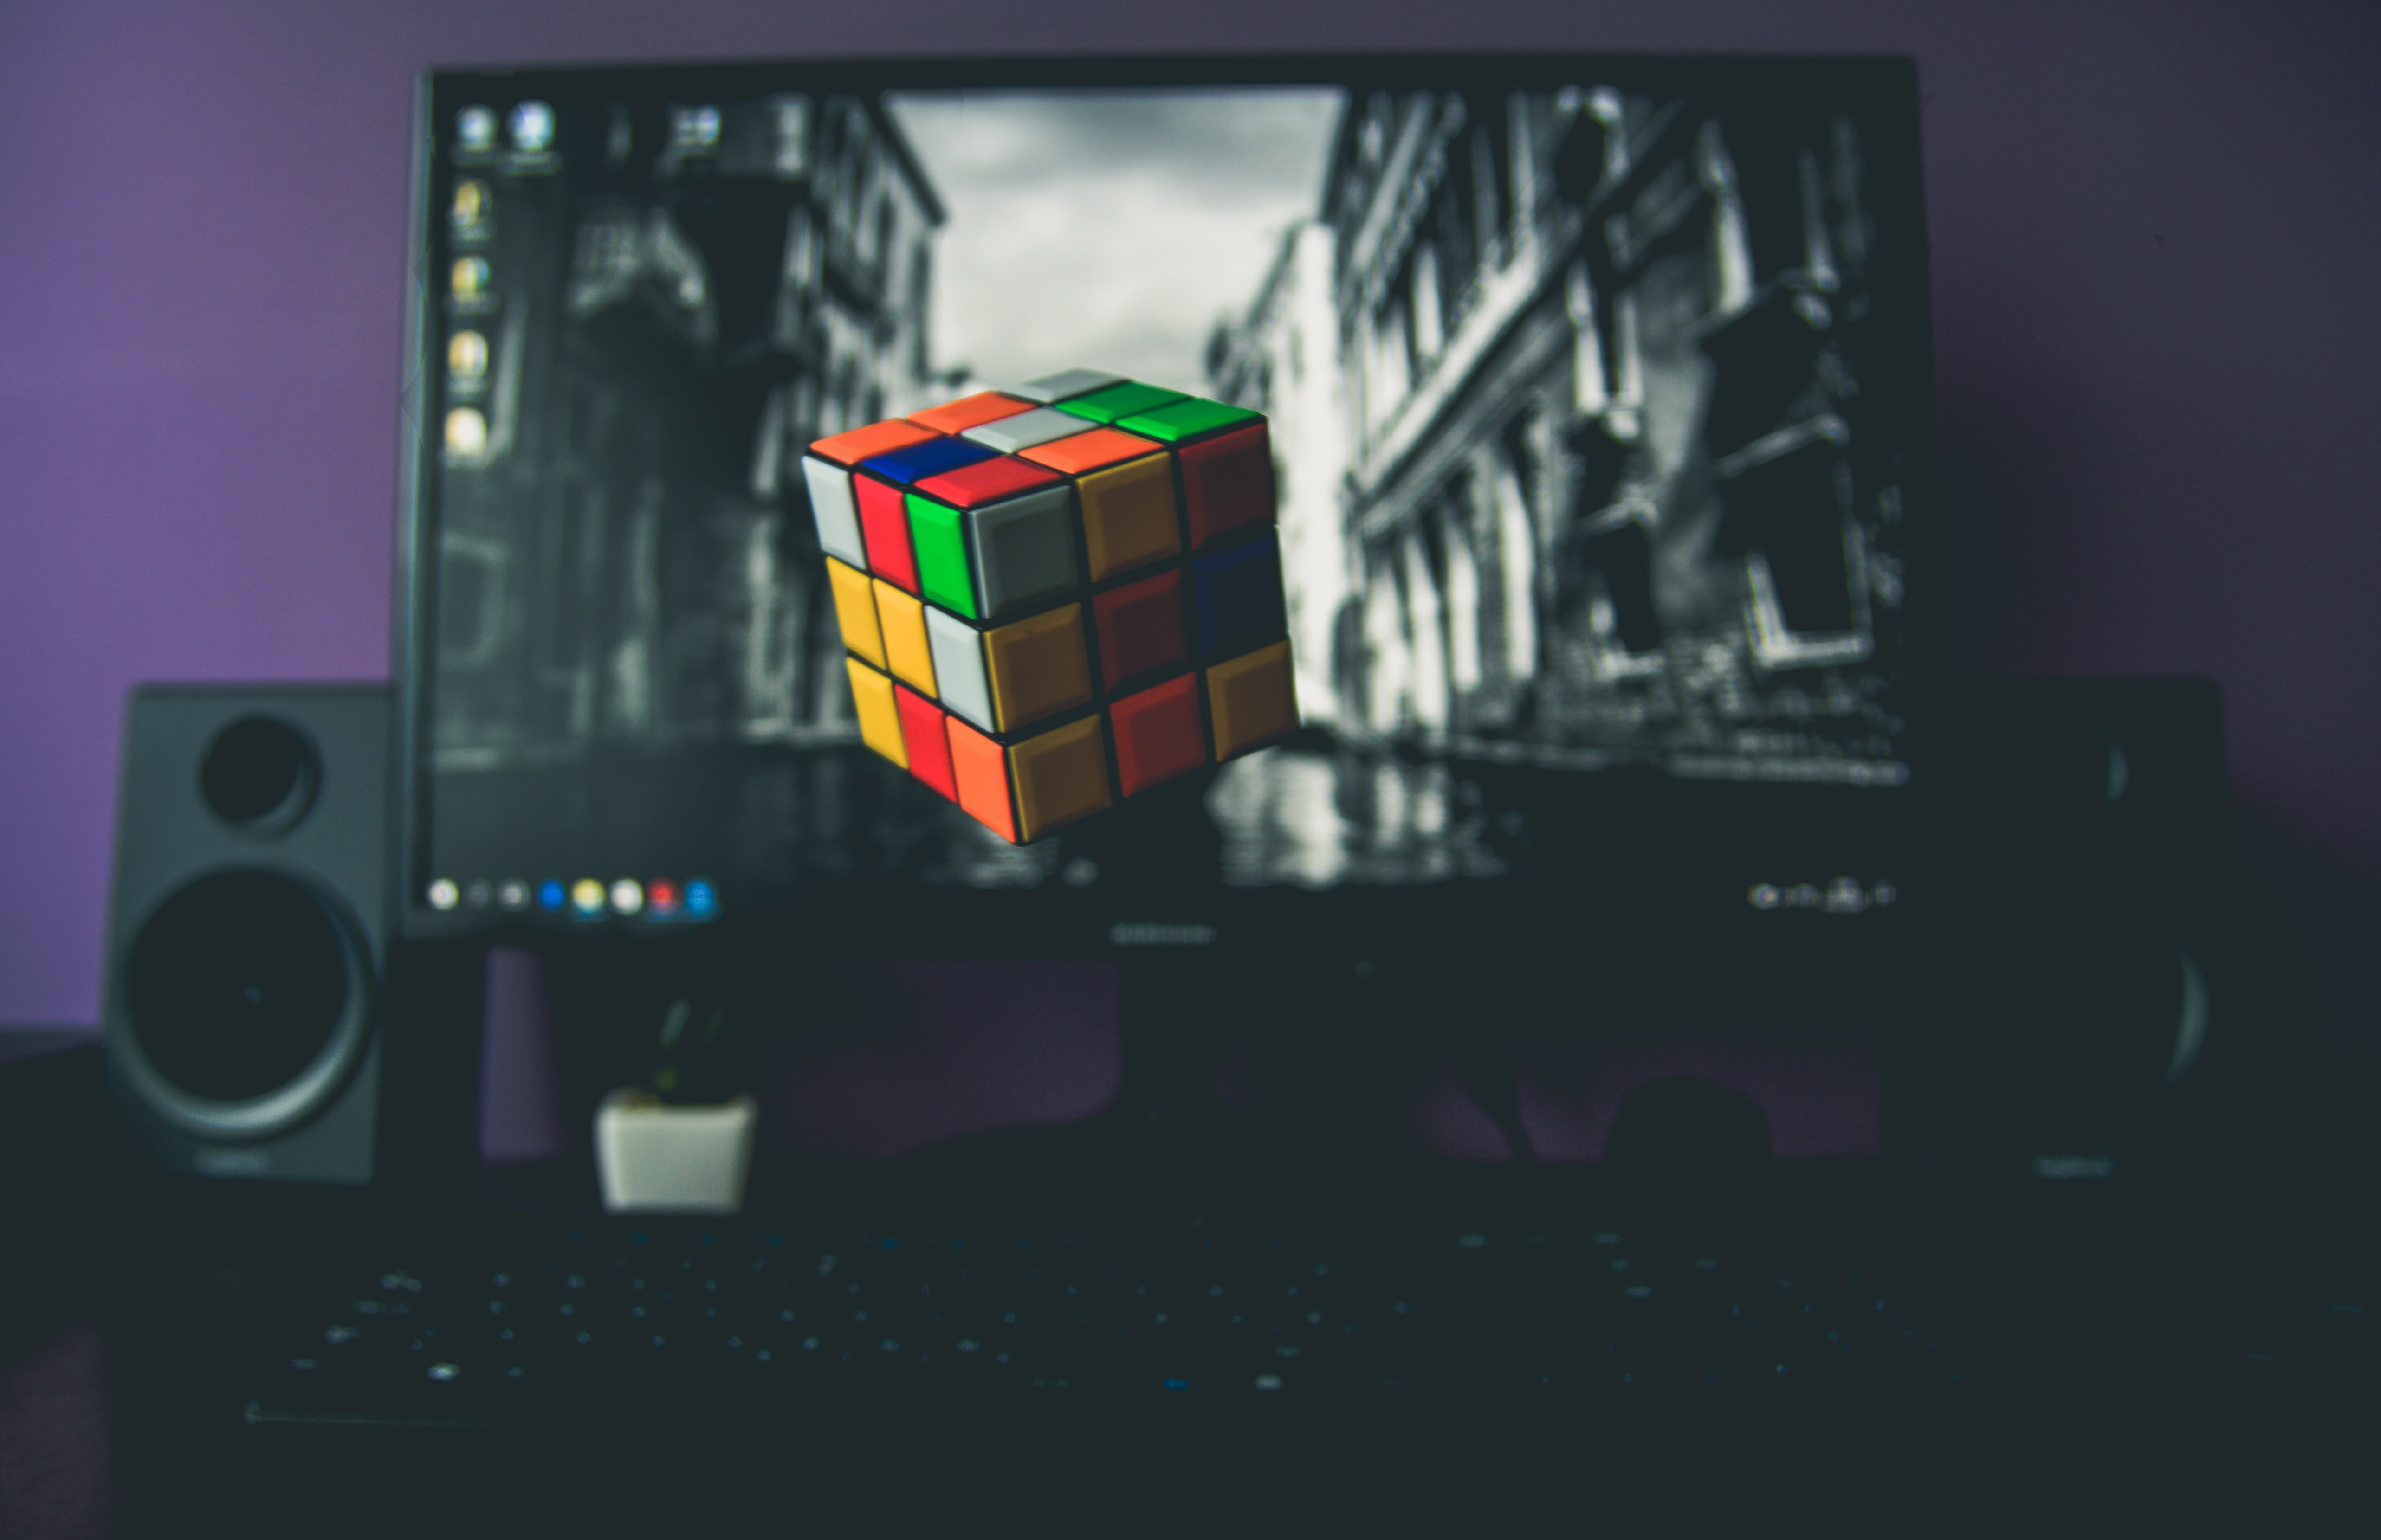 Colorful rubik's cube floats in front of computer monitor and speakers